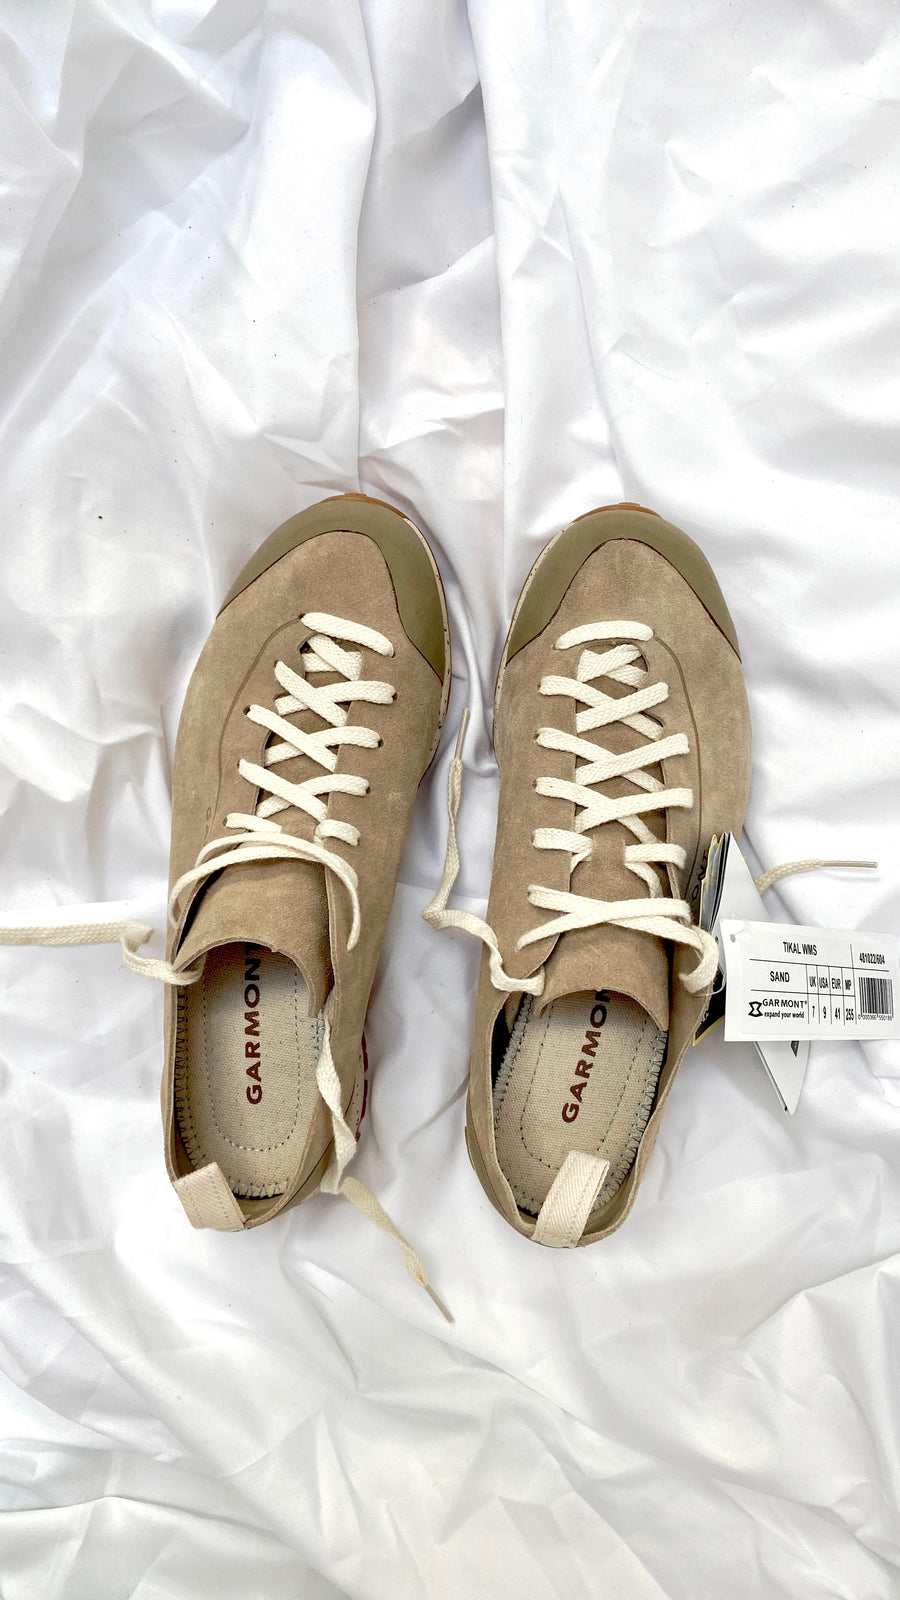 NEW Garmont Tikal Shoes in Sand (9)